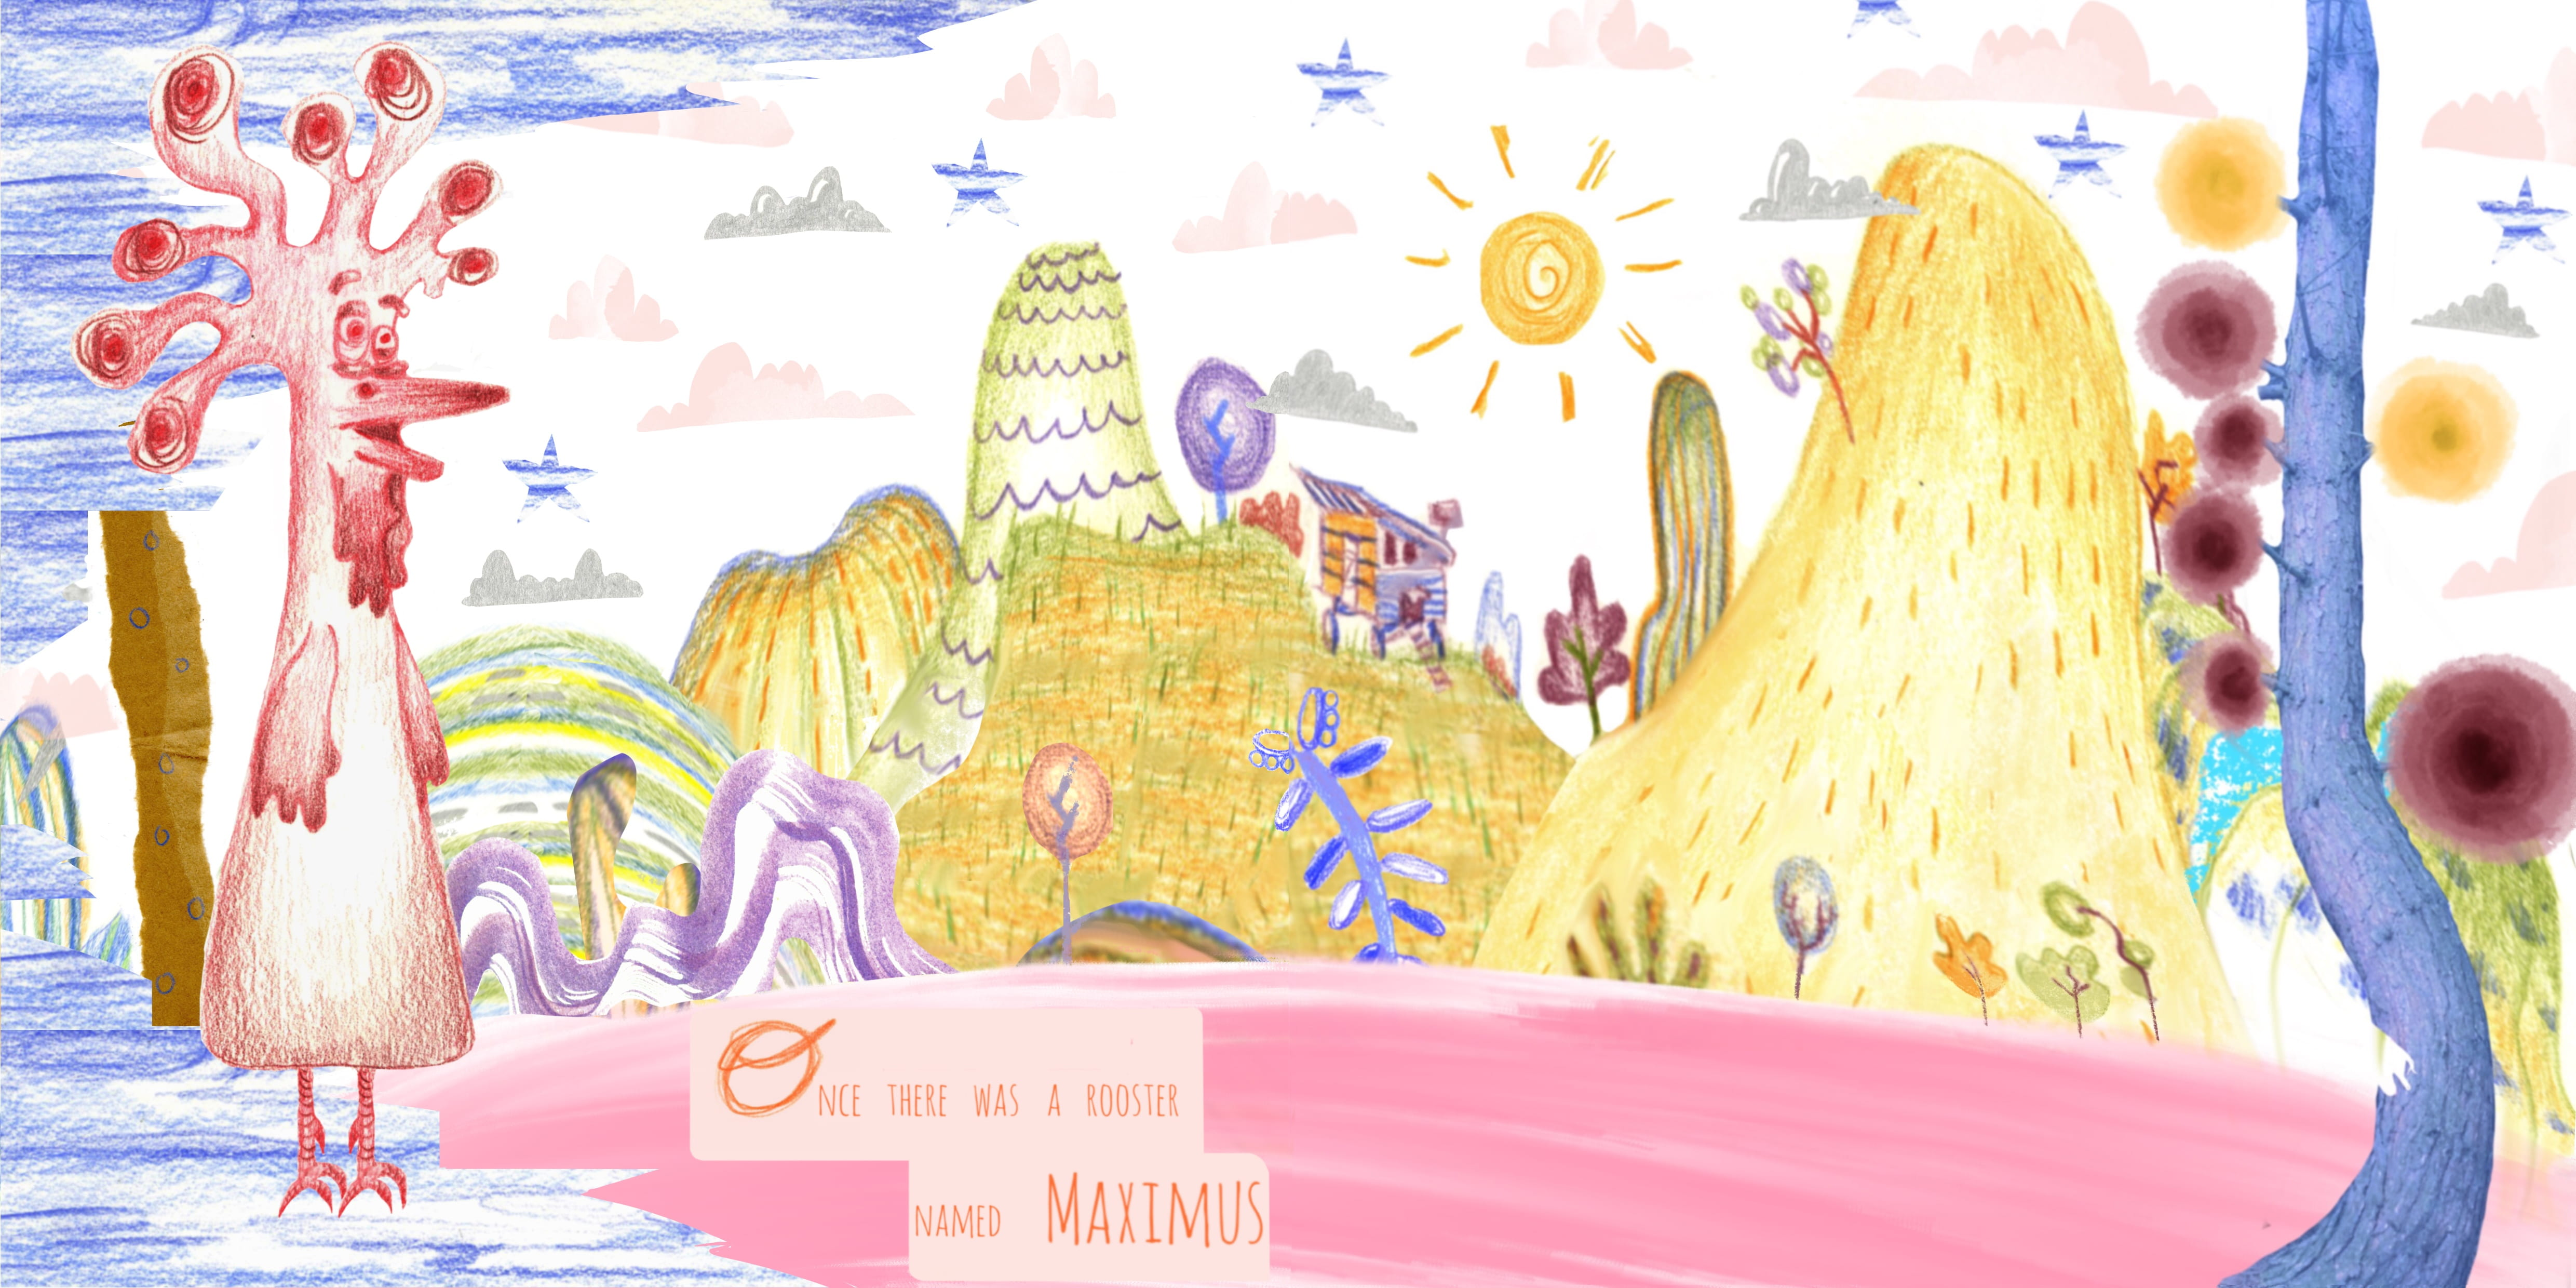 Pencil illustration of a pink rooster, standing in front of yellow hills. Text in the bottom middle of image reading: Once there was a rooster named Maximus.